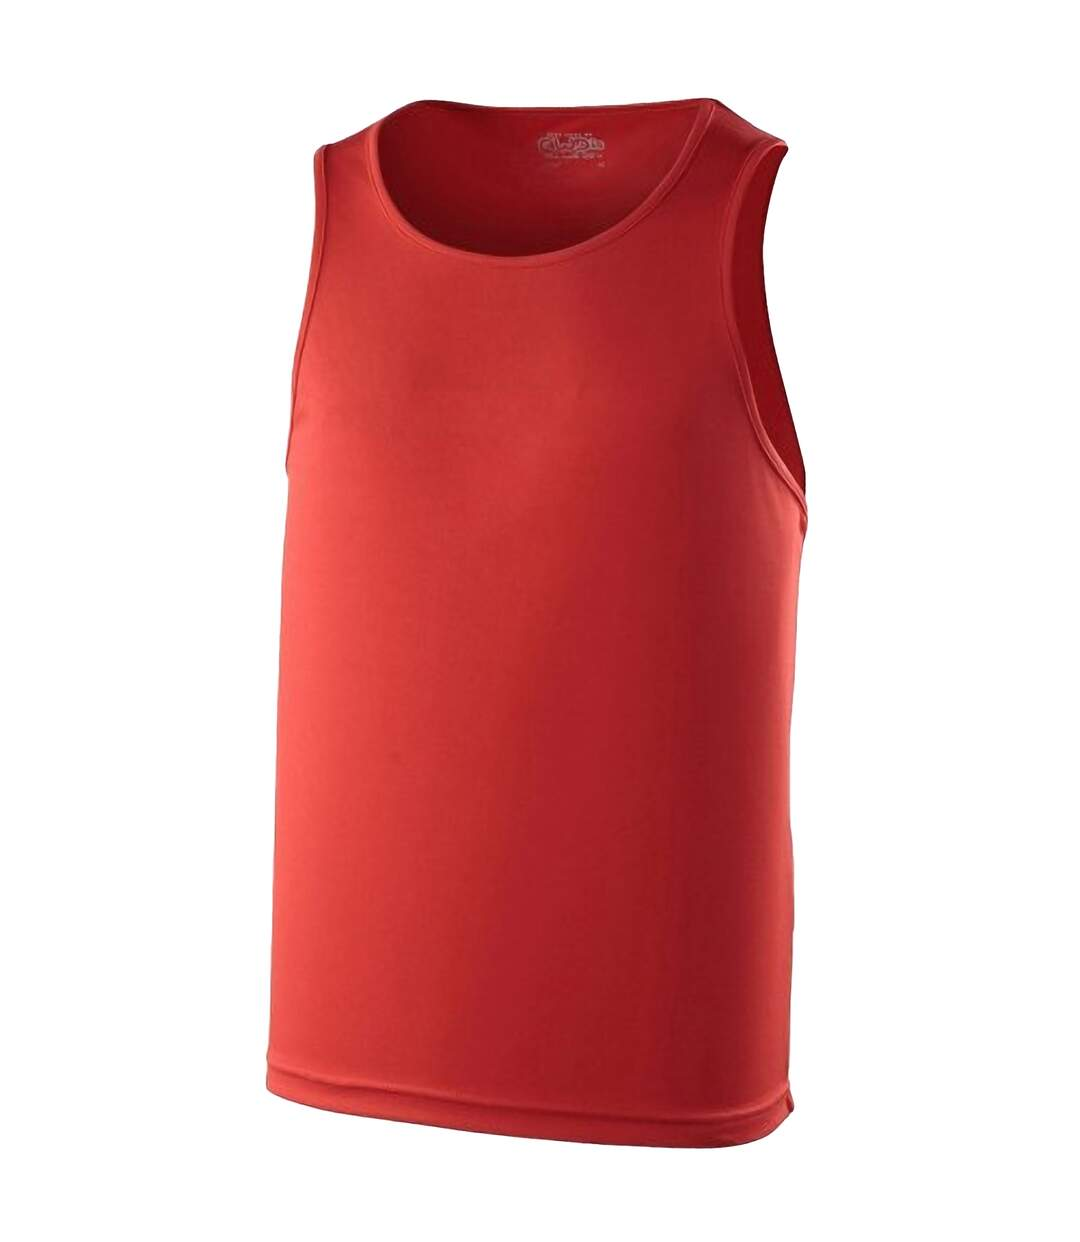 Just Cool Mens Sports Gym Plain Tank / Vest Top (Jet Black) - UTRW687